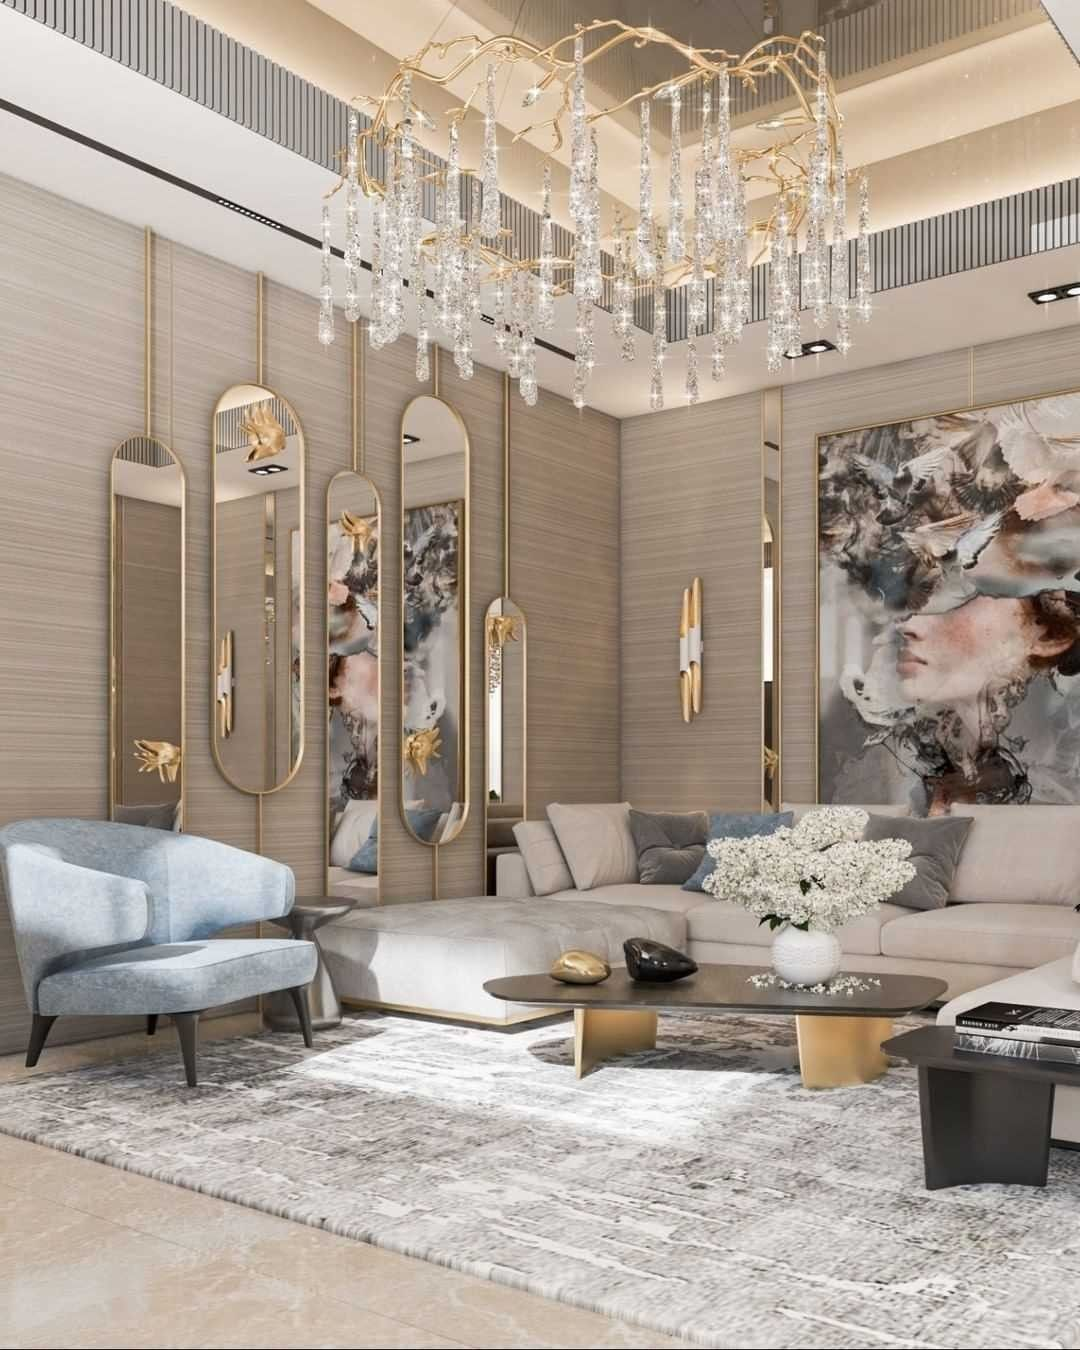 Astonishing Inspirations For Your Next Interior Design Project